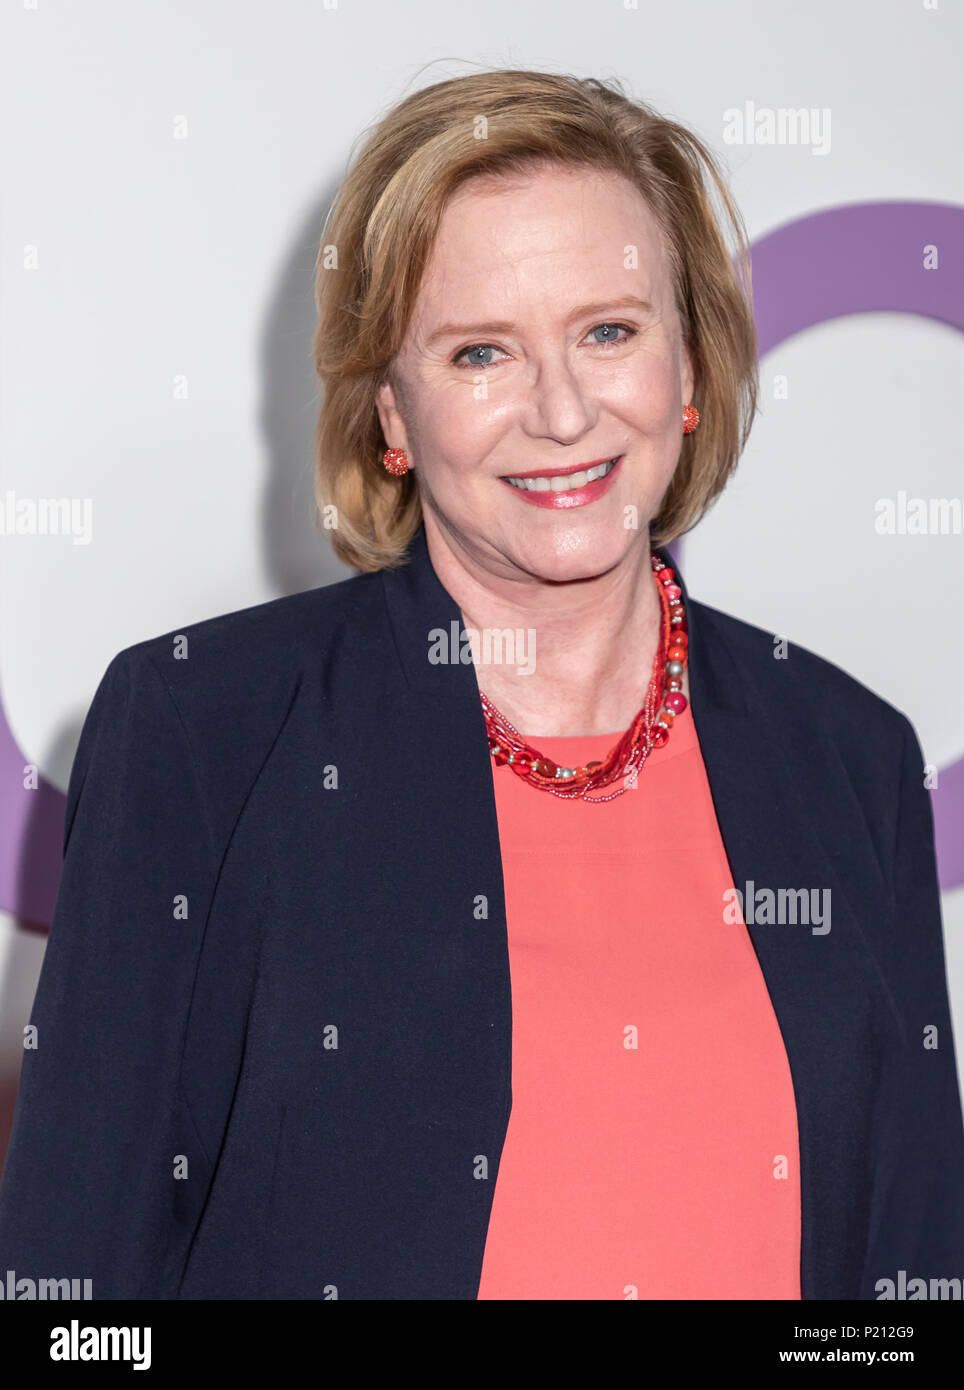 New York, NY, USA - June 12, 2018: Eve Plumb attends the New York special screening of the Netflix film 'Set It Up' at AMC Loews Lincoln Square Credit: Sam Aronov/Alamy Live News - Stock Image